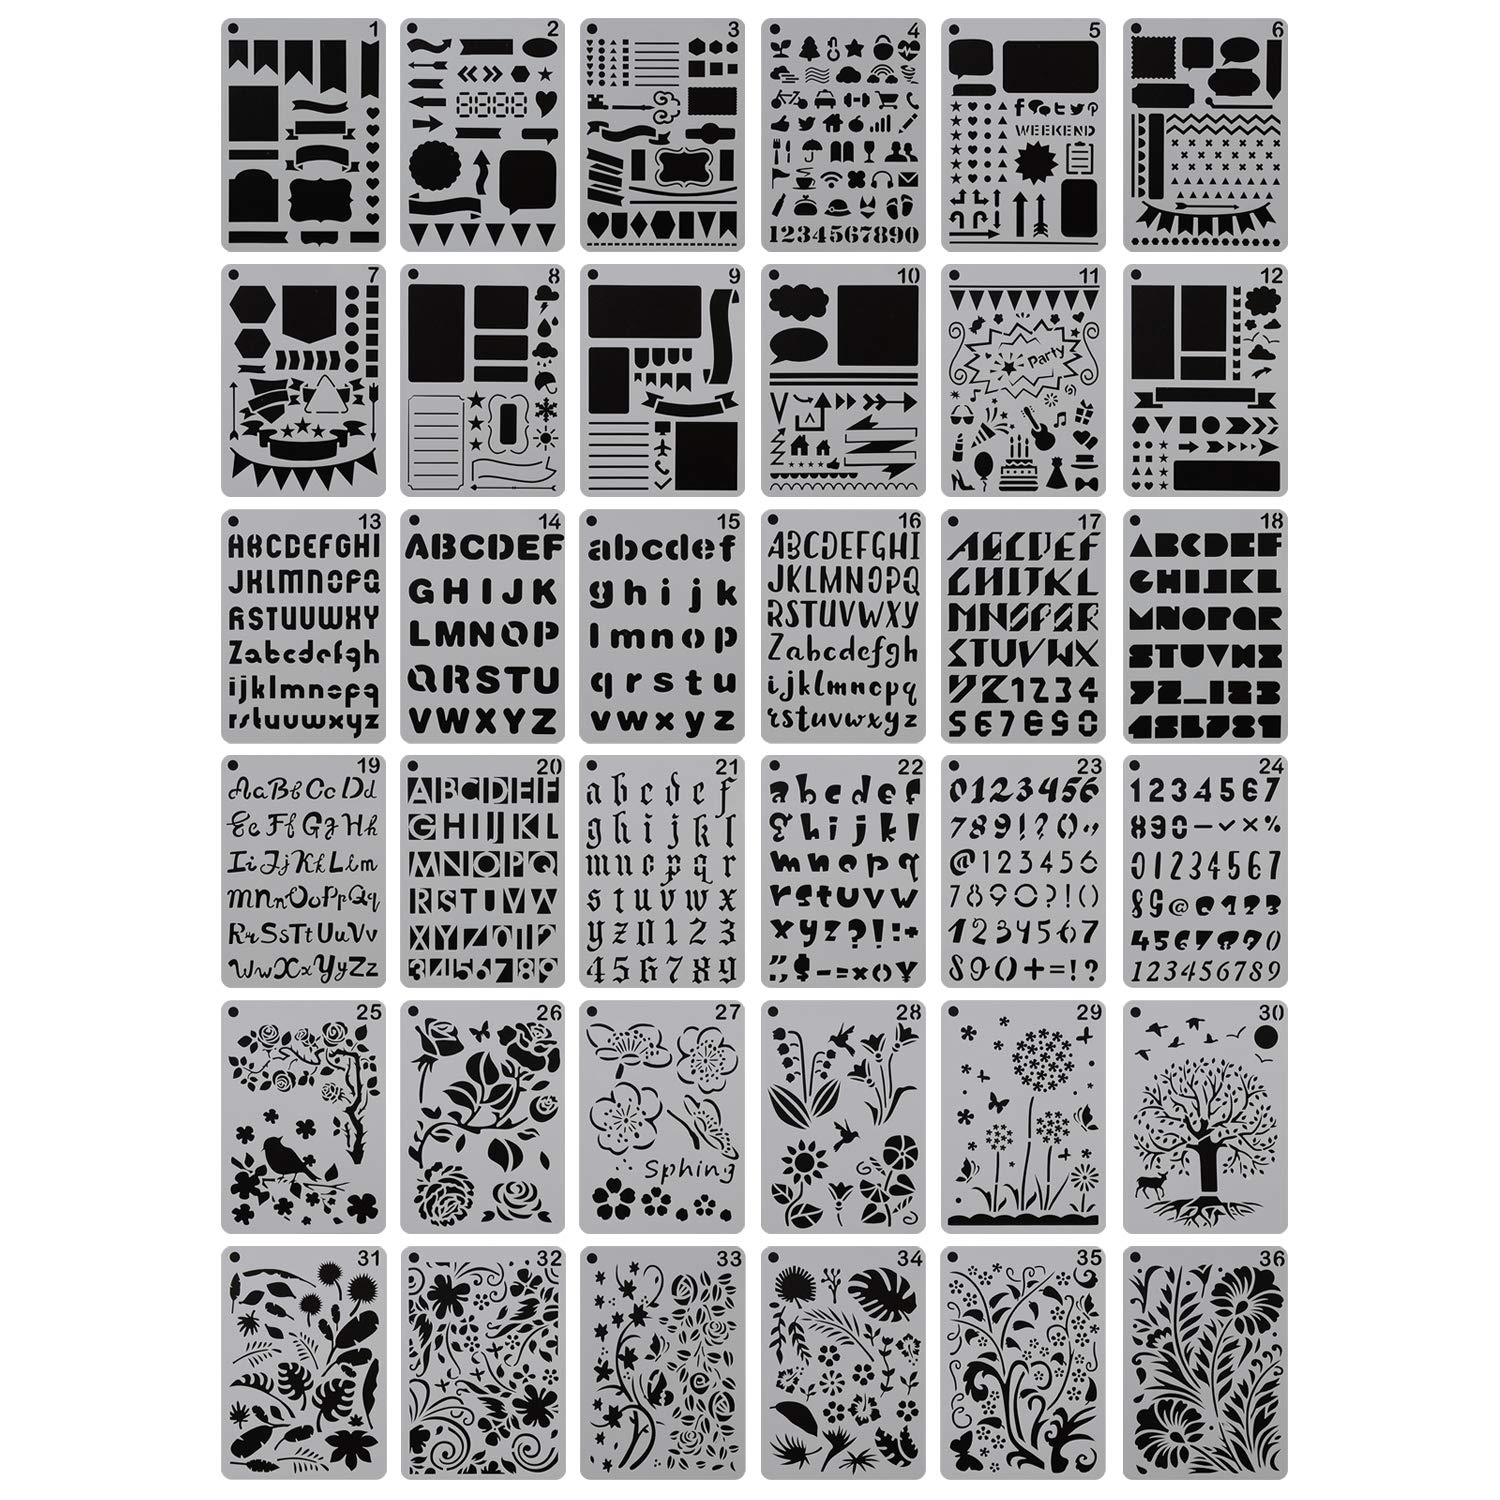 YUEAON 36-Pack 5'' x 7'' Drawing Stencils Floral Letter and Number Template Stencil for A5 Bullet Journal Scrapbooking Notebook Dairy Planner Craft by YUEAON